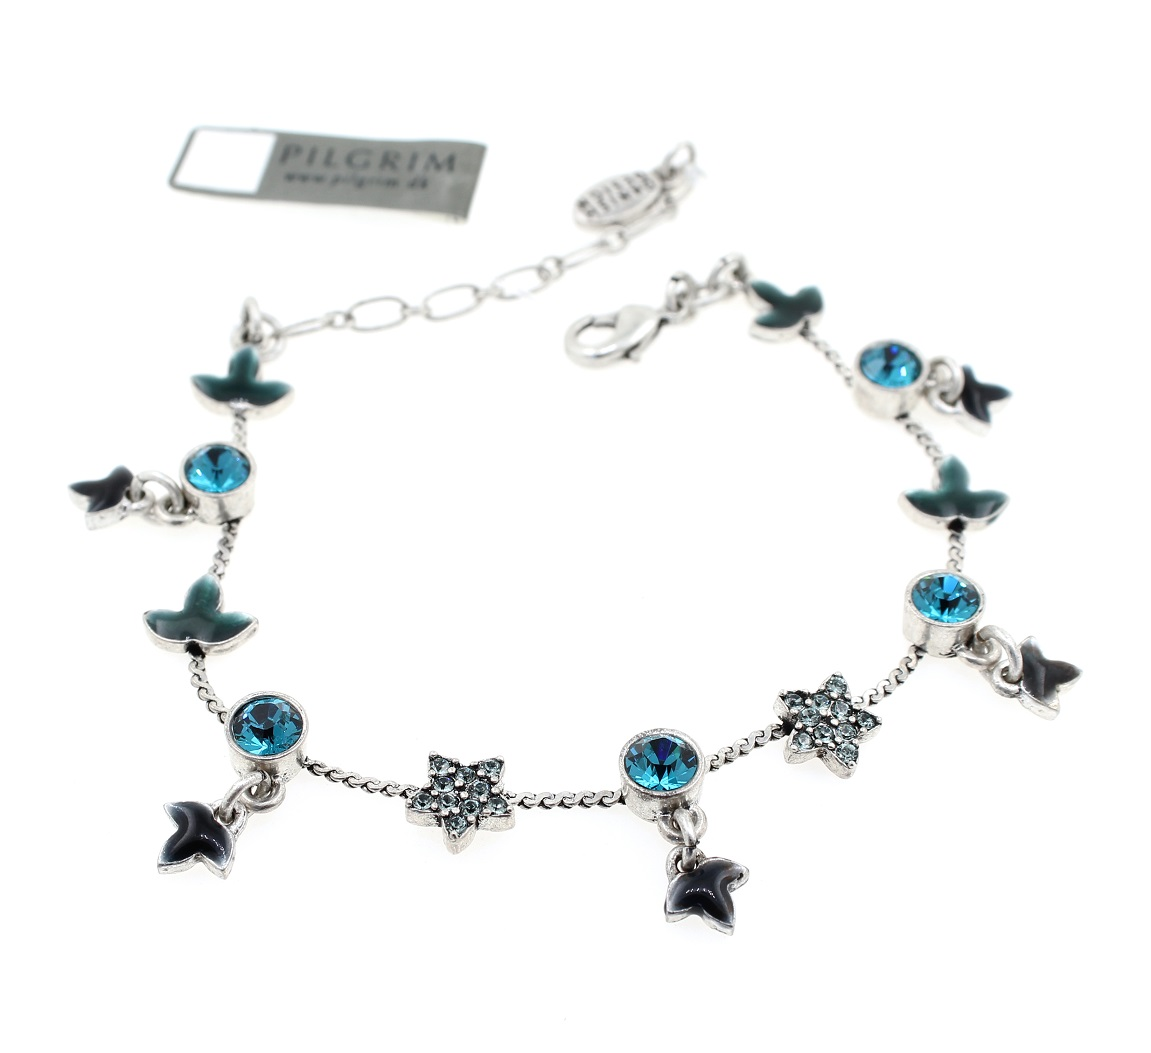 PILGRIM - Circle Line - Simple Star & Leaf Bracelet - Silver/Blue BNWT